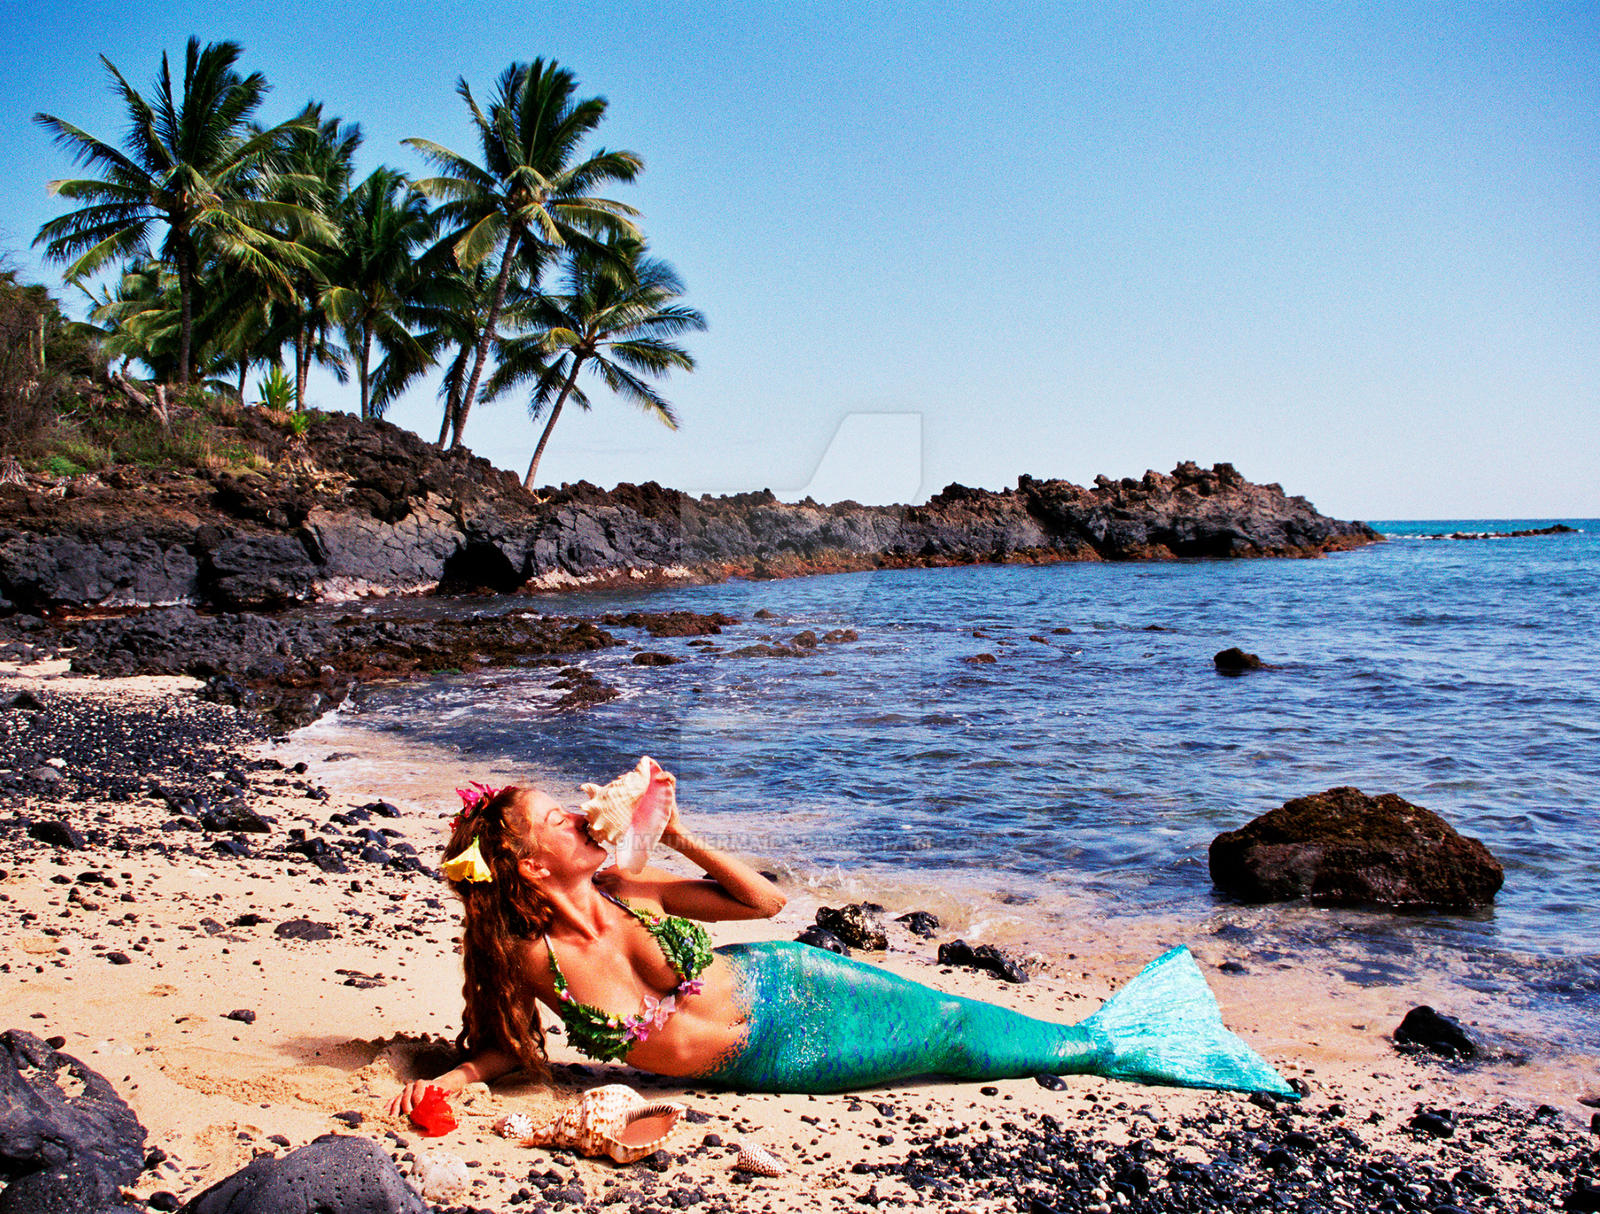 maui mermaids cove by mauimermaids on deviantart